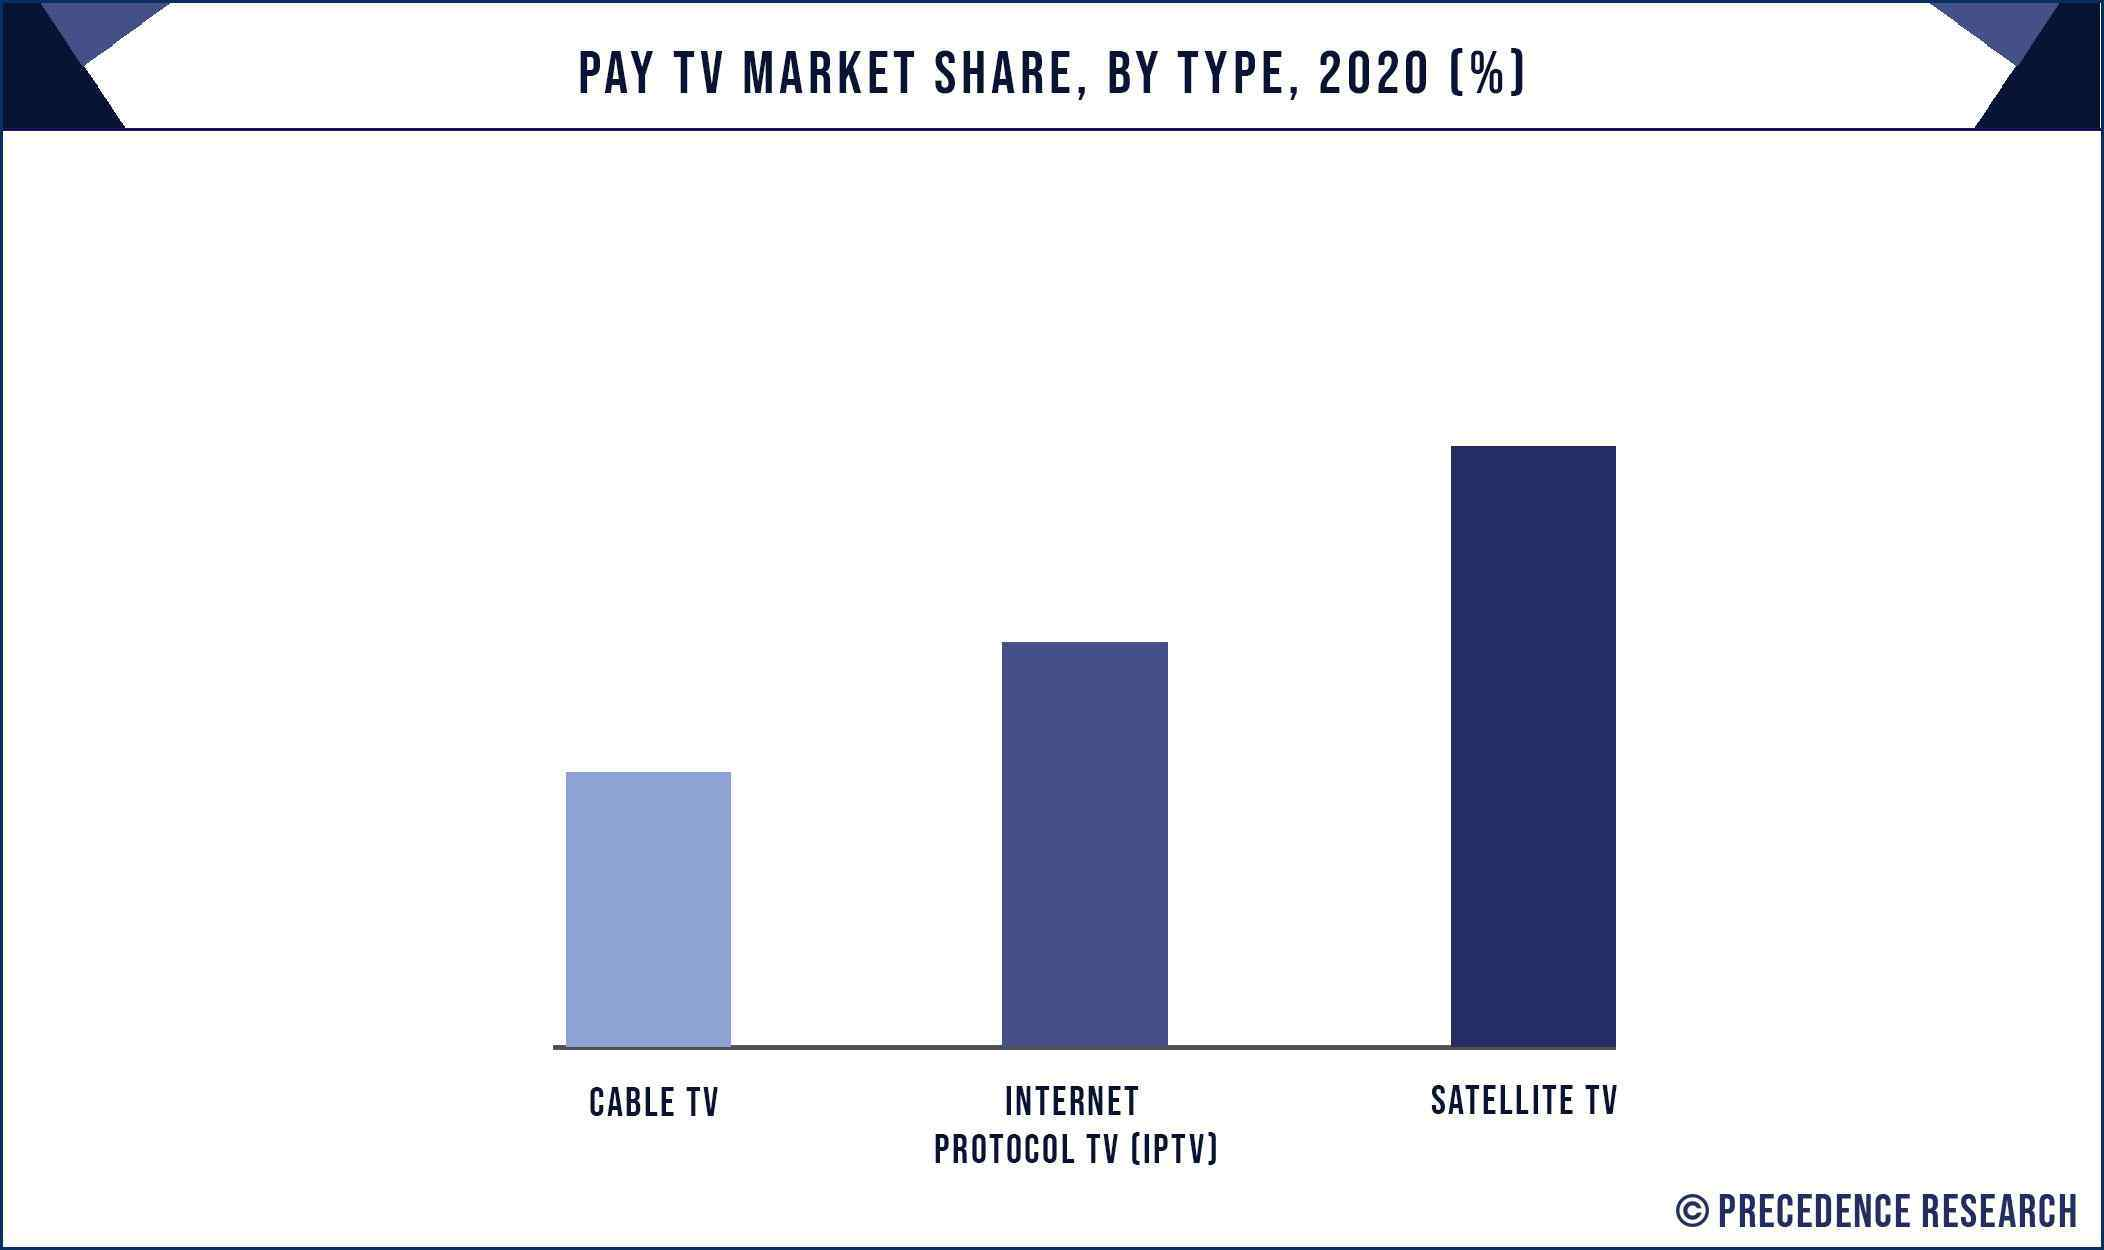 Pay TV Market Share, By Type, 2020 (%)